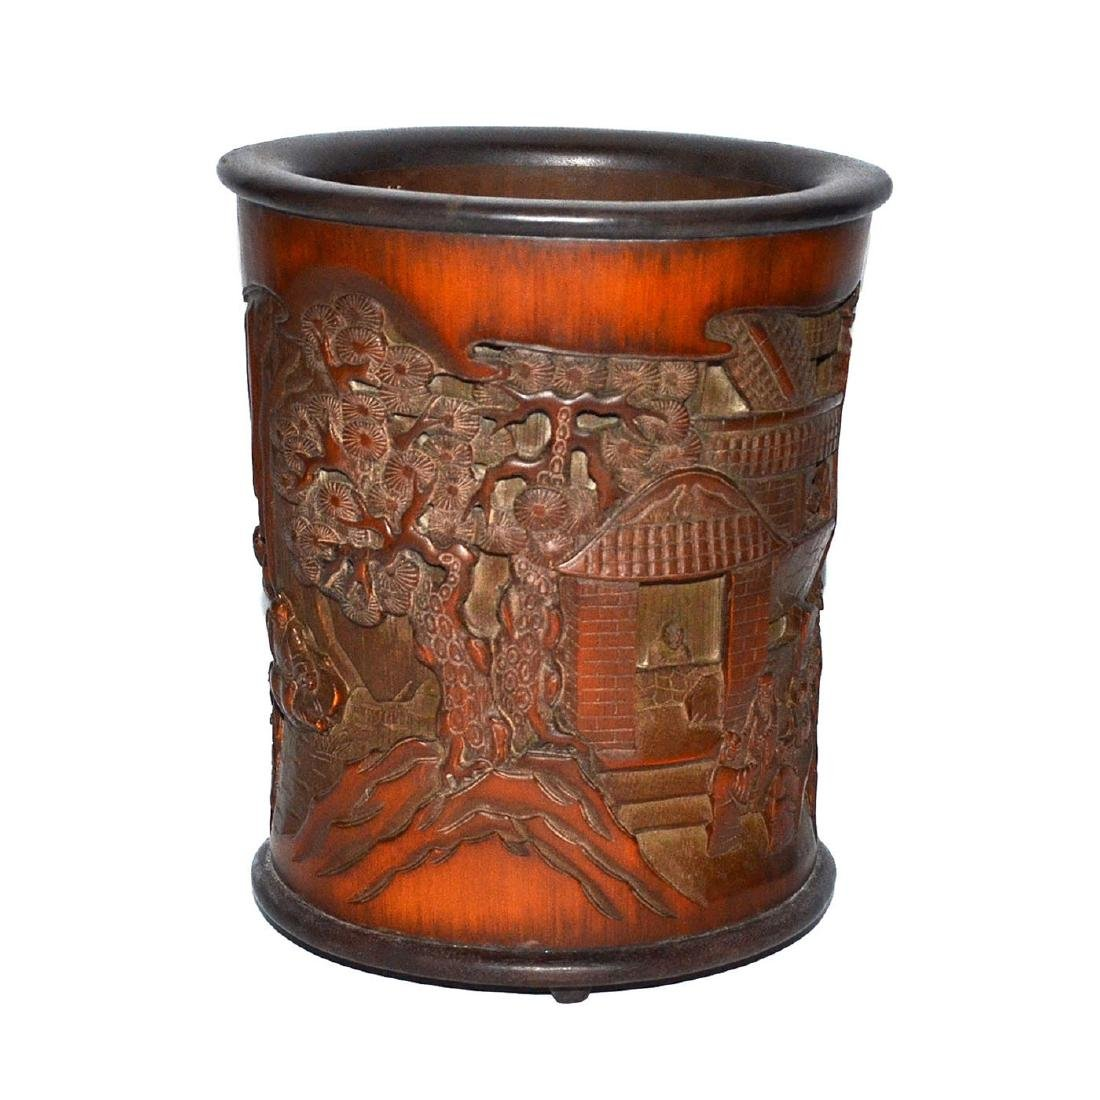 A Deeply Carved Bamboo Brush Pot with an Openwork Scene - 3